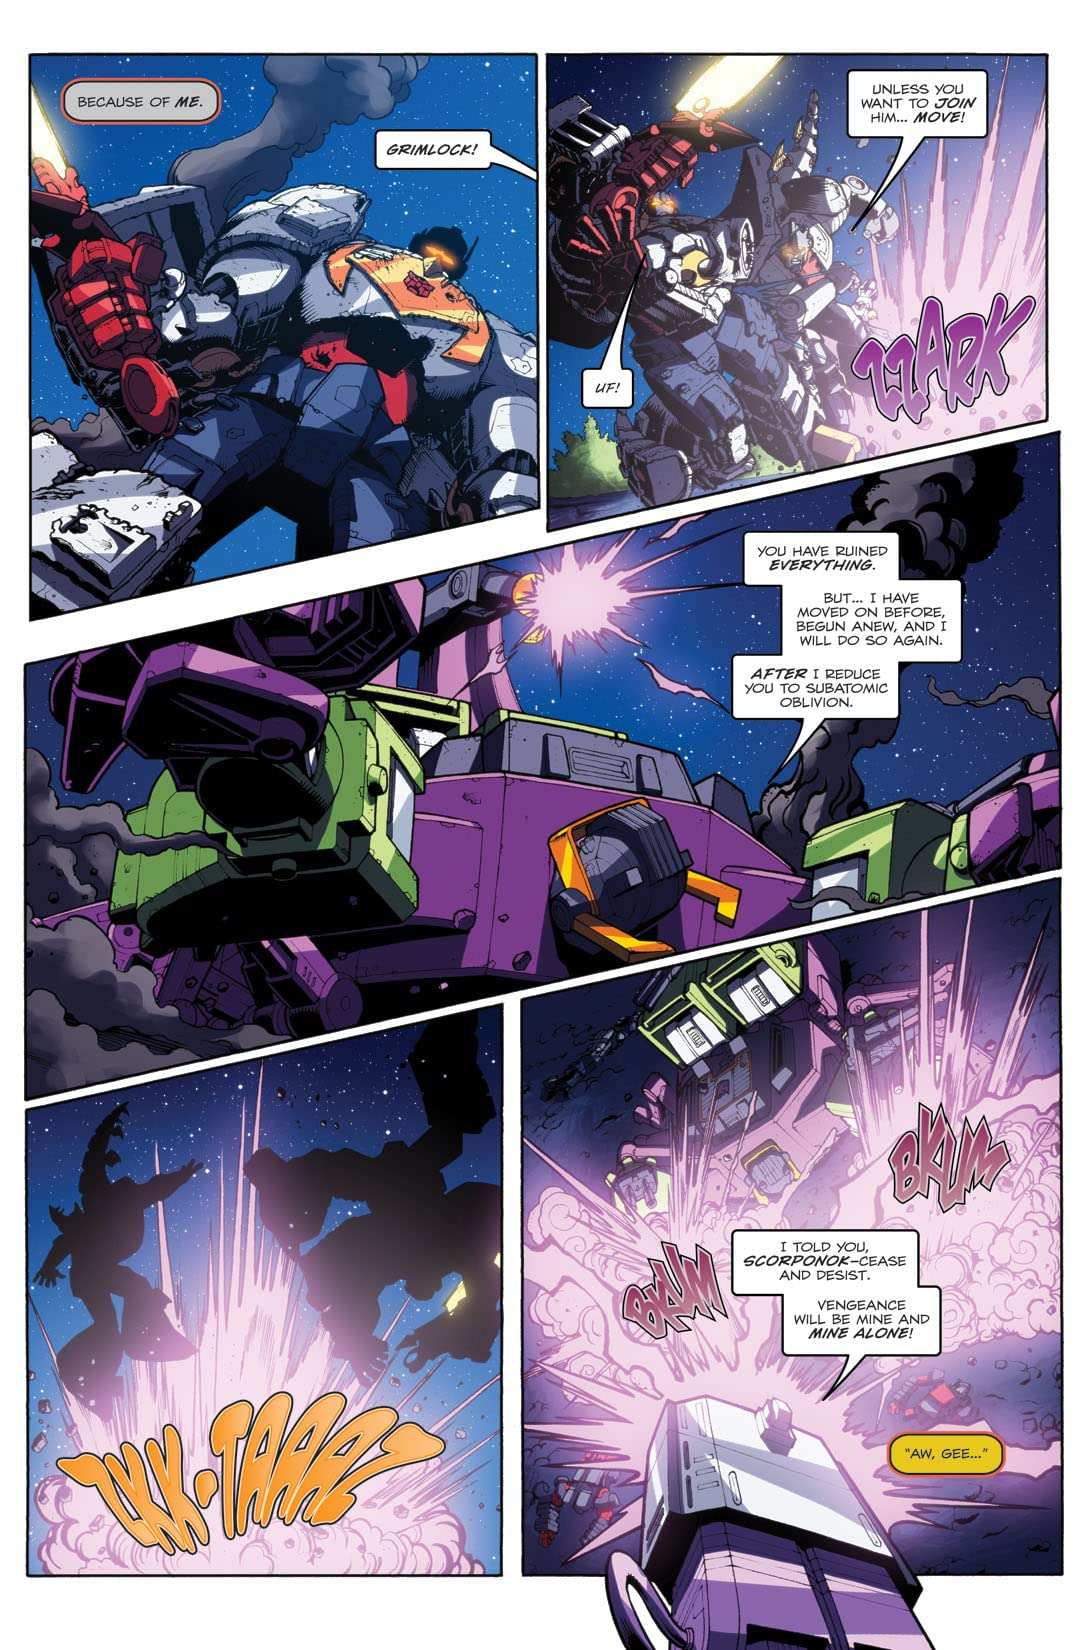 Transformers: Maximum Dinobots #5